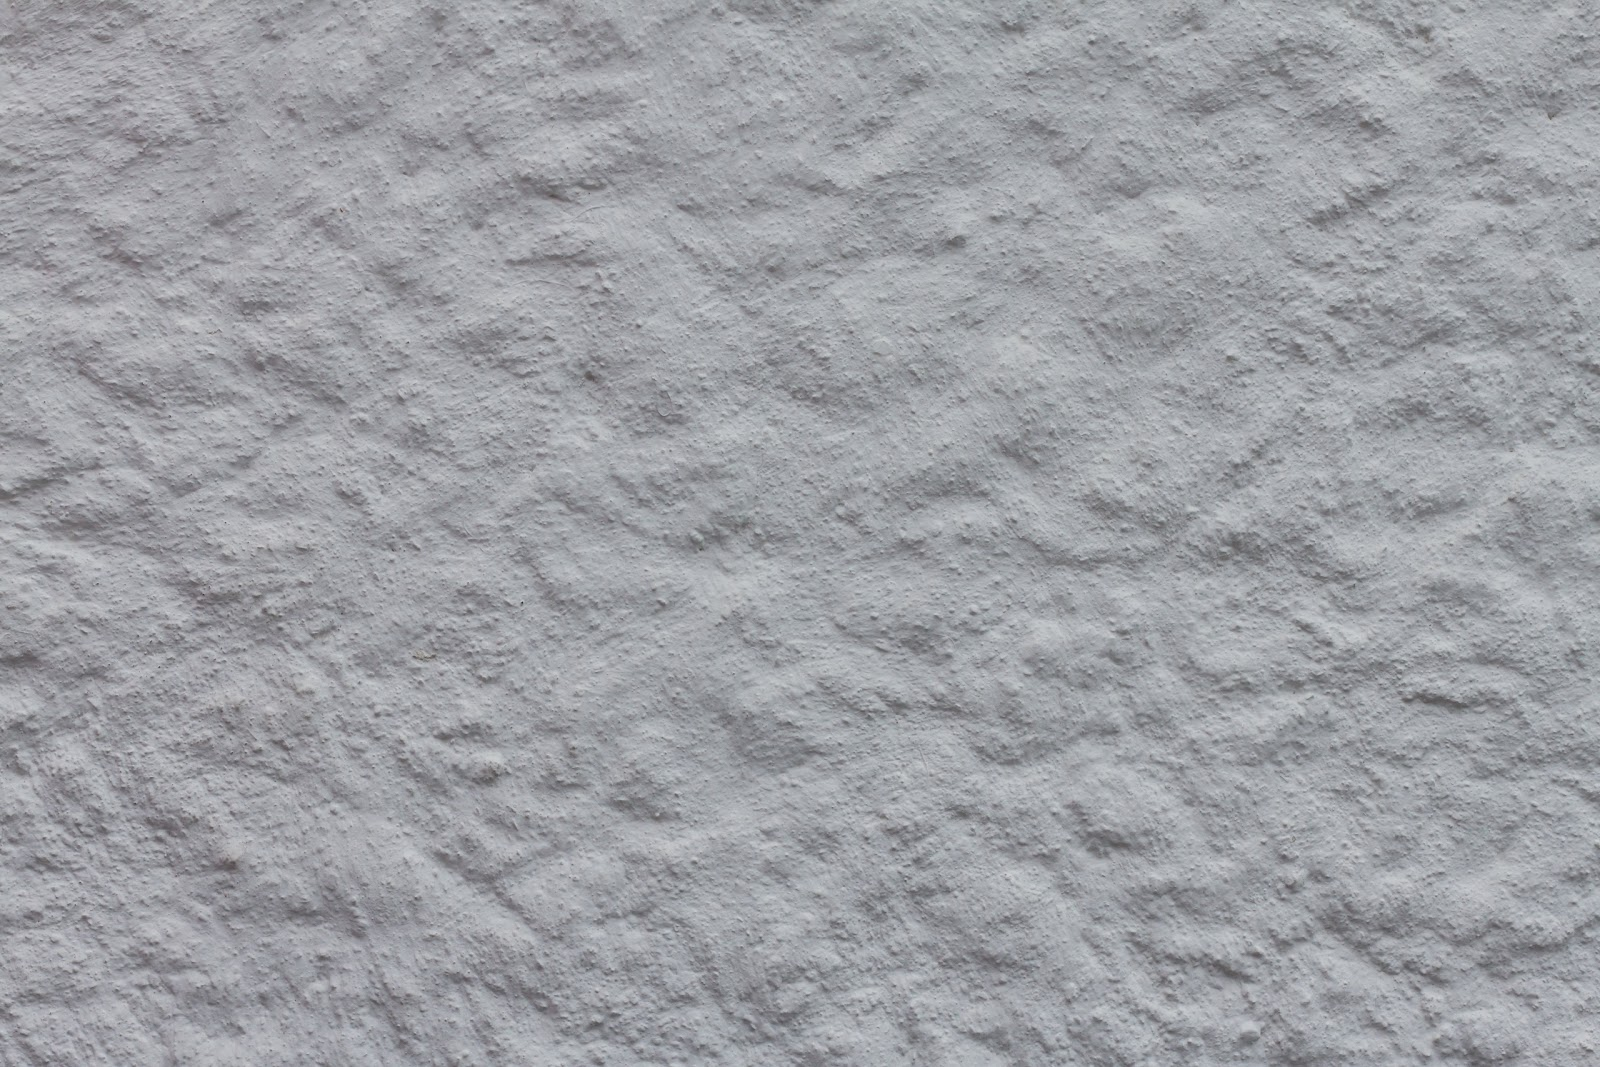 High Resolution Seamless Textures Lumpy Wall Plaster Texture